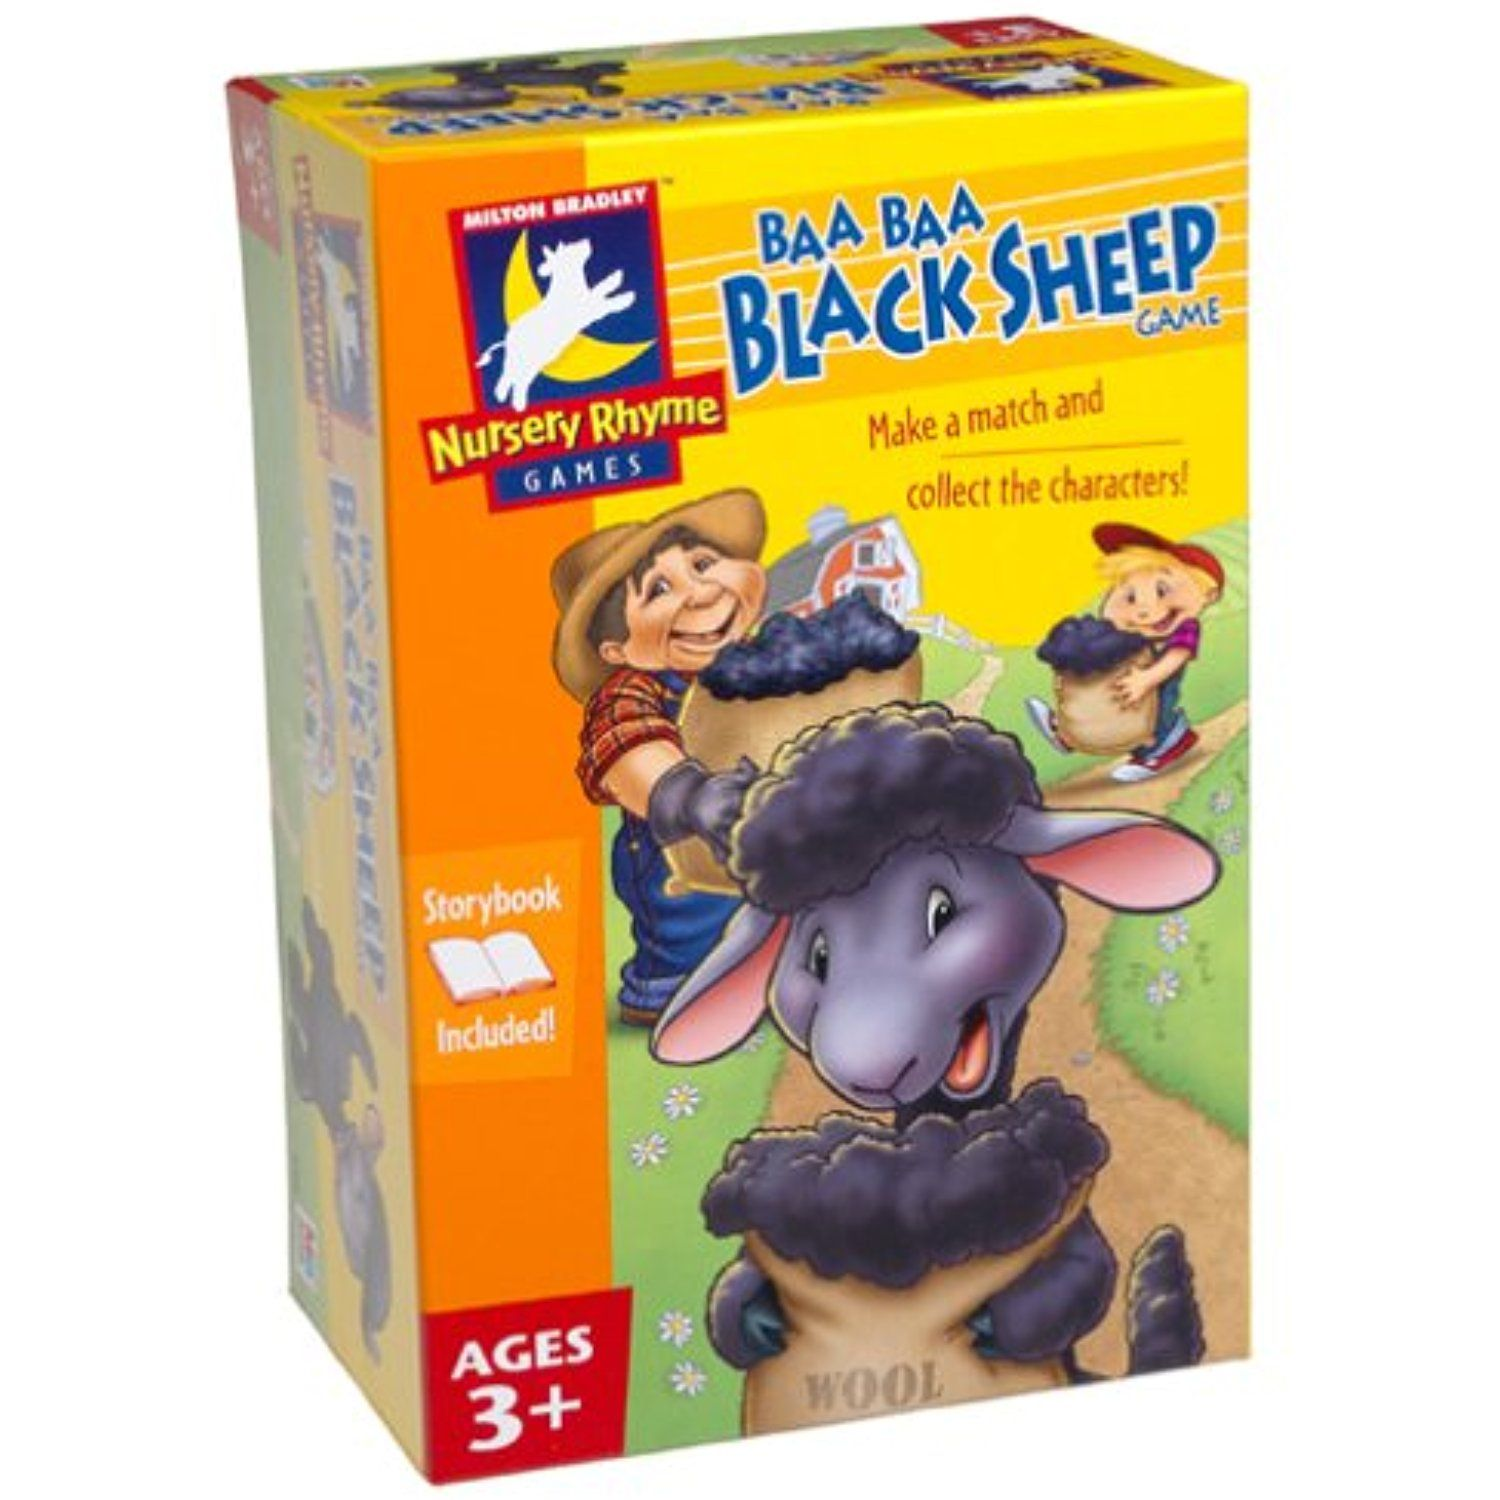 Baa Baa Black Sheep Game Gt Gt Gt Read More Reviews Of The